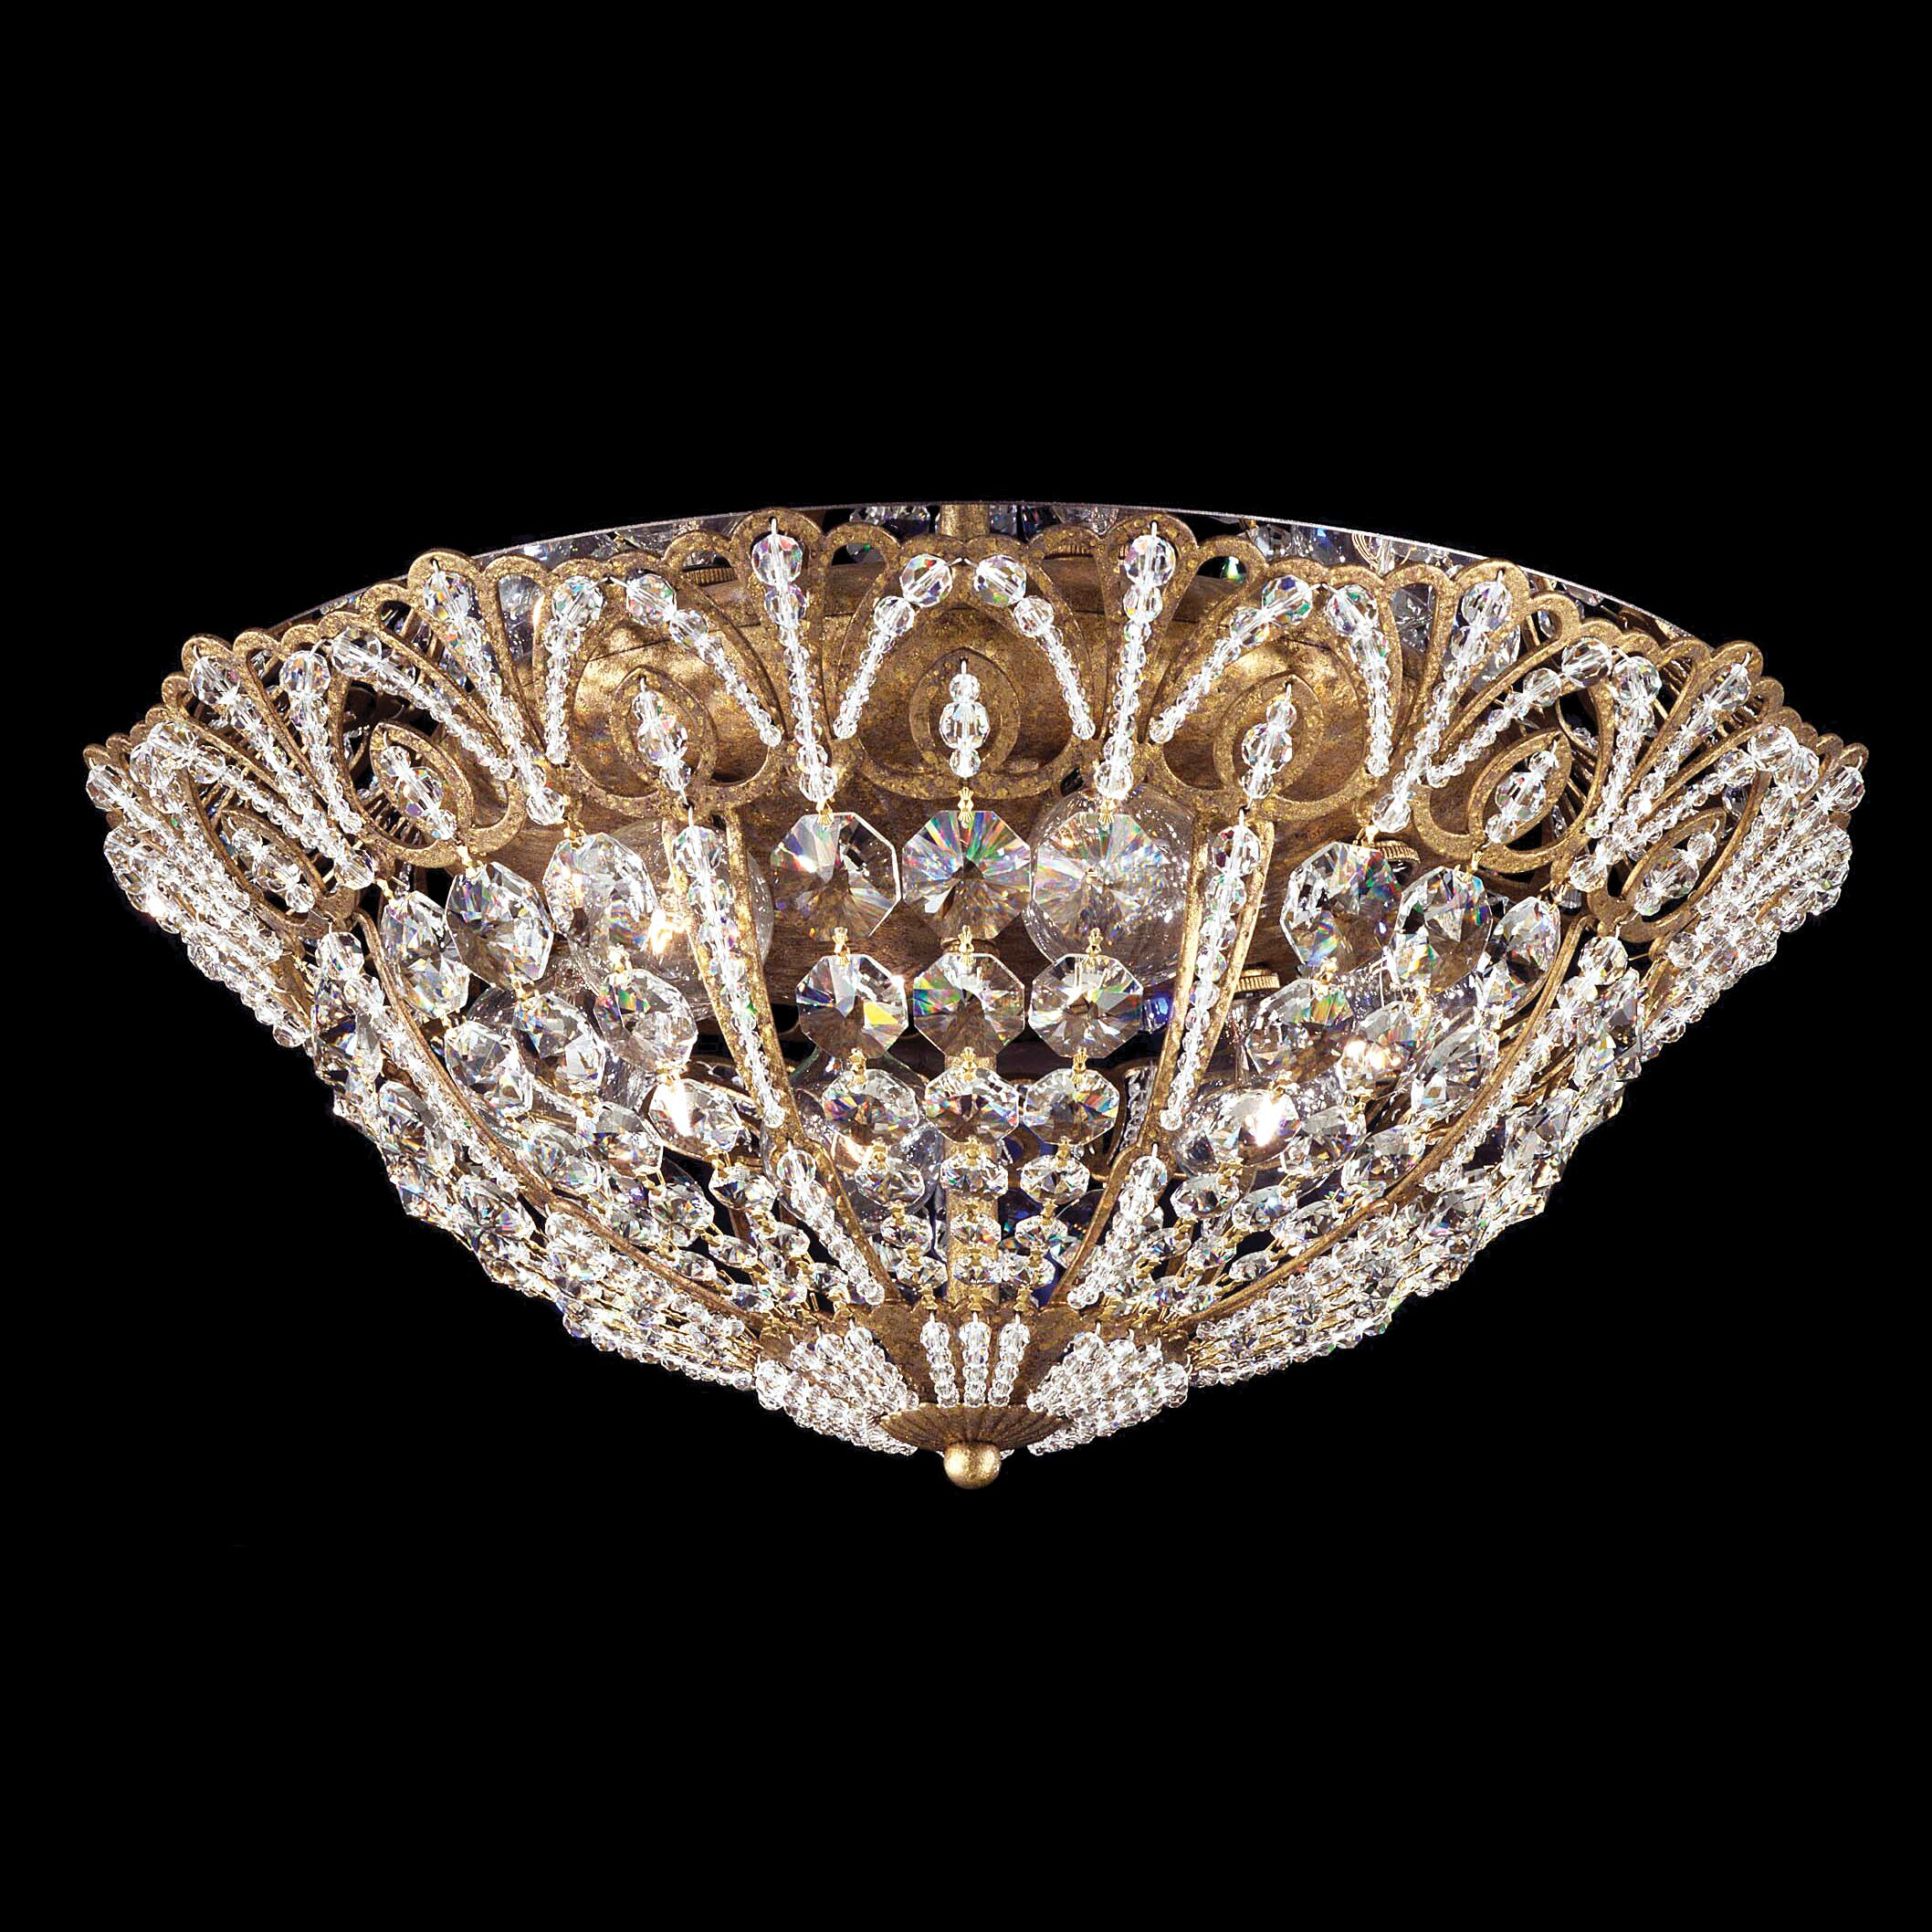 Tiara Flush Mount Size / Finish: 8